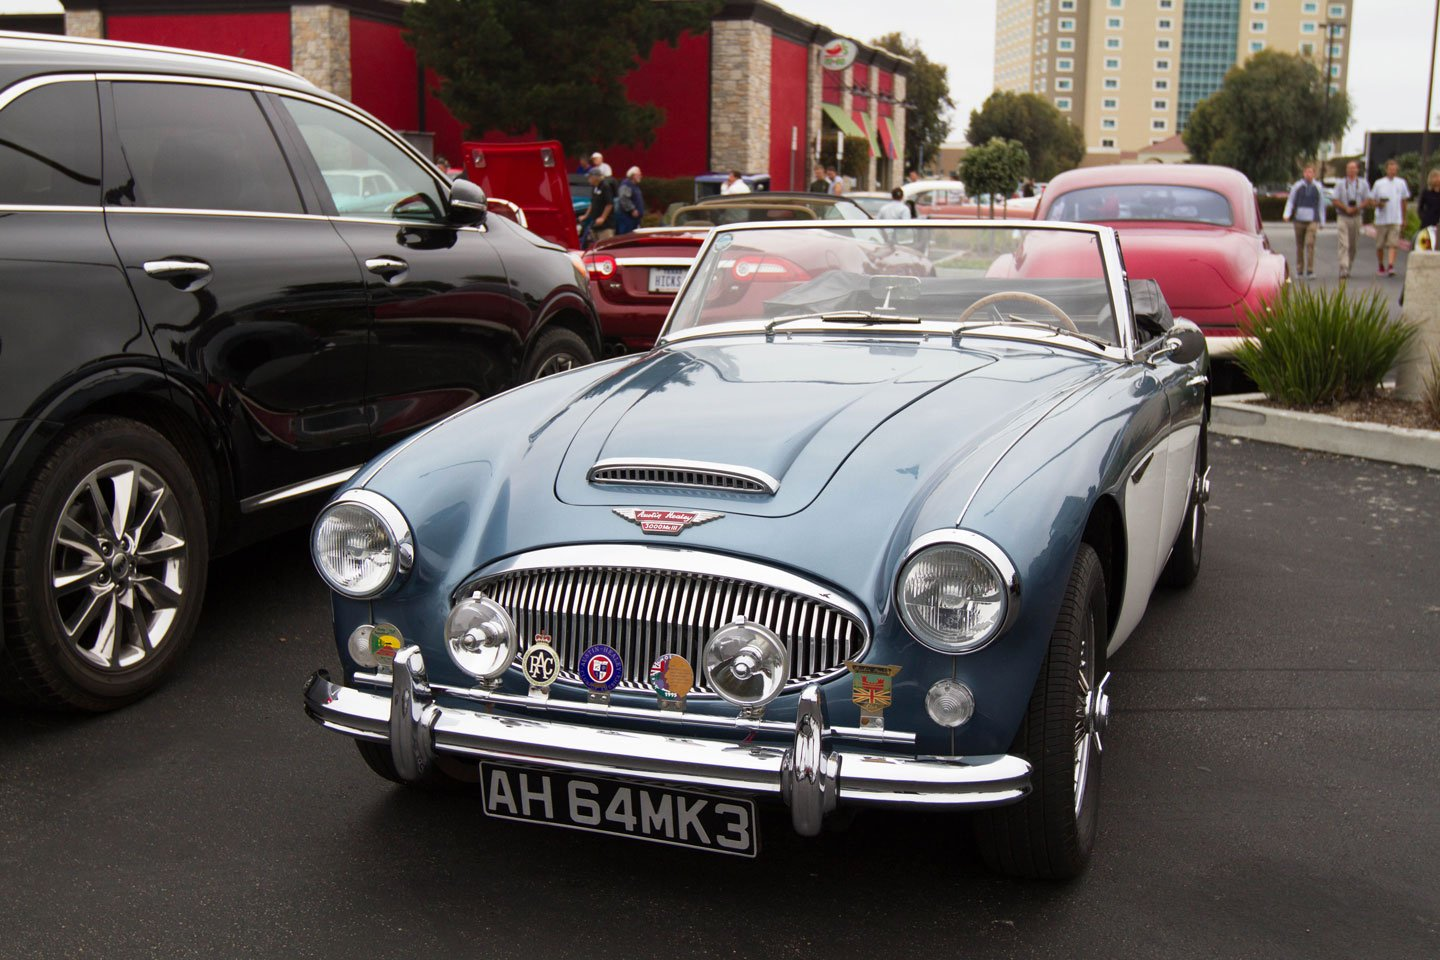 https://cdn2.hubspot.net/hubfs/347760/C_Blogs/Blog_Images/Austin-Healey.jpg